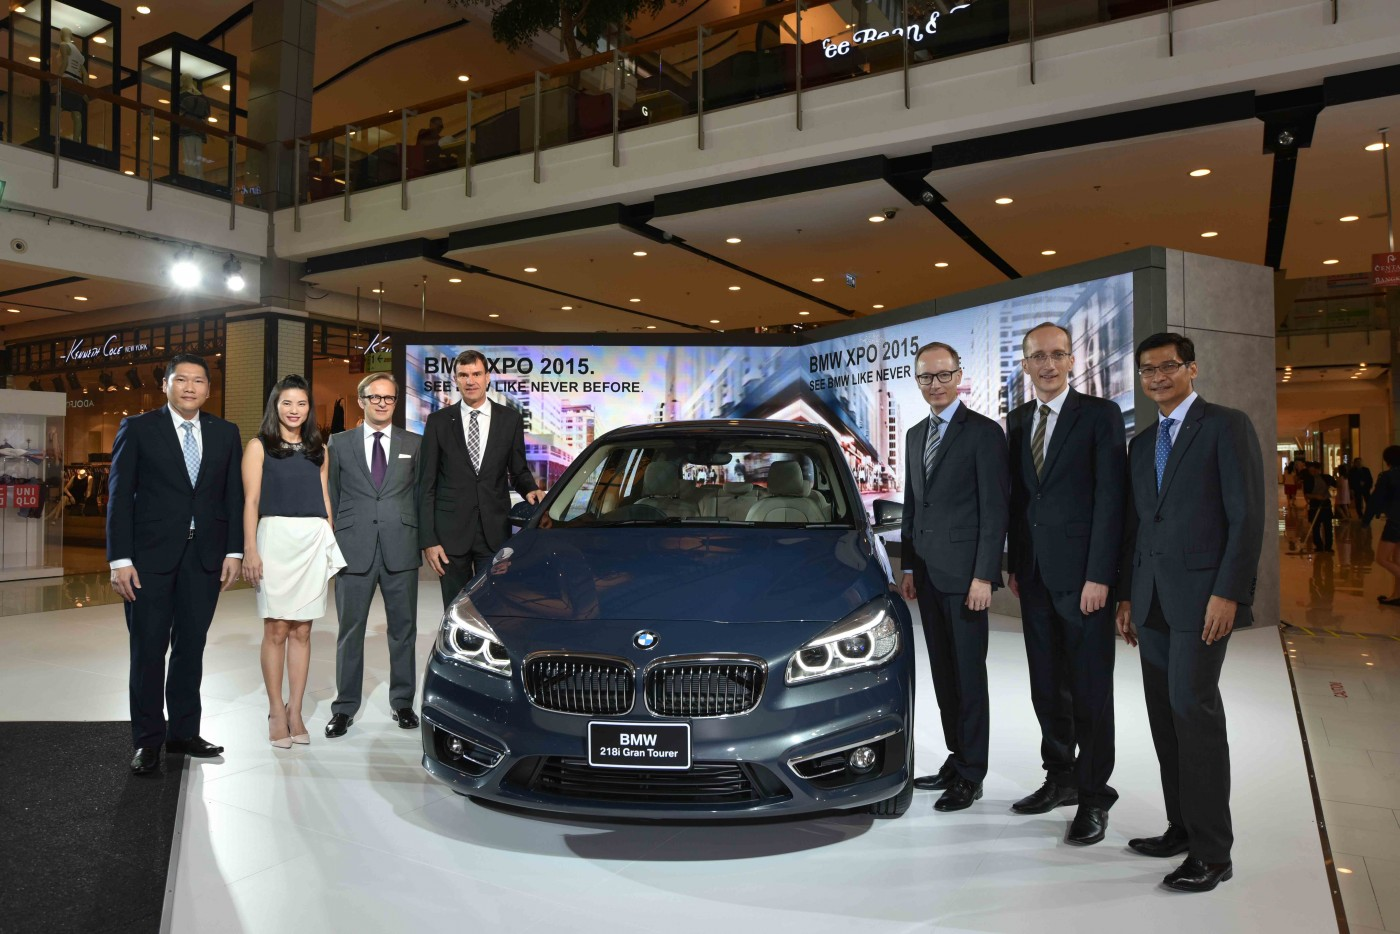 BMW Xpo 2015 Press conference